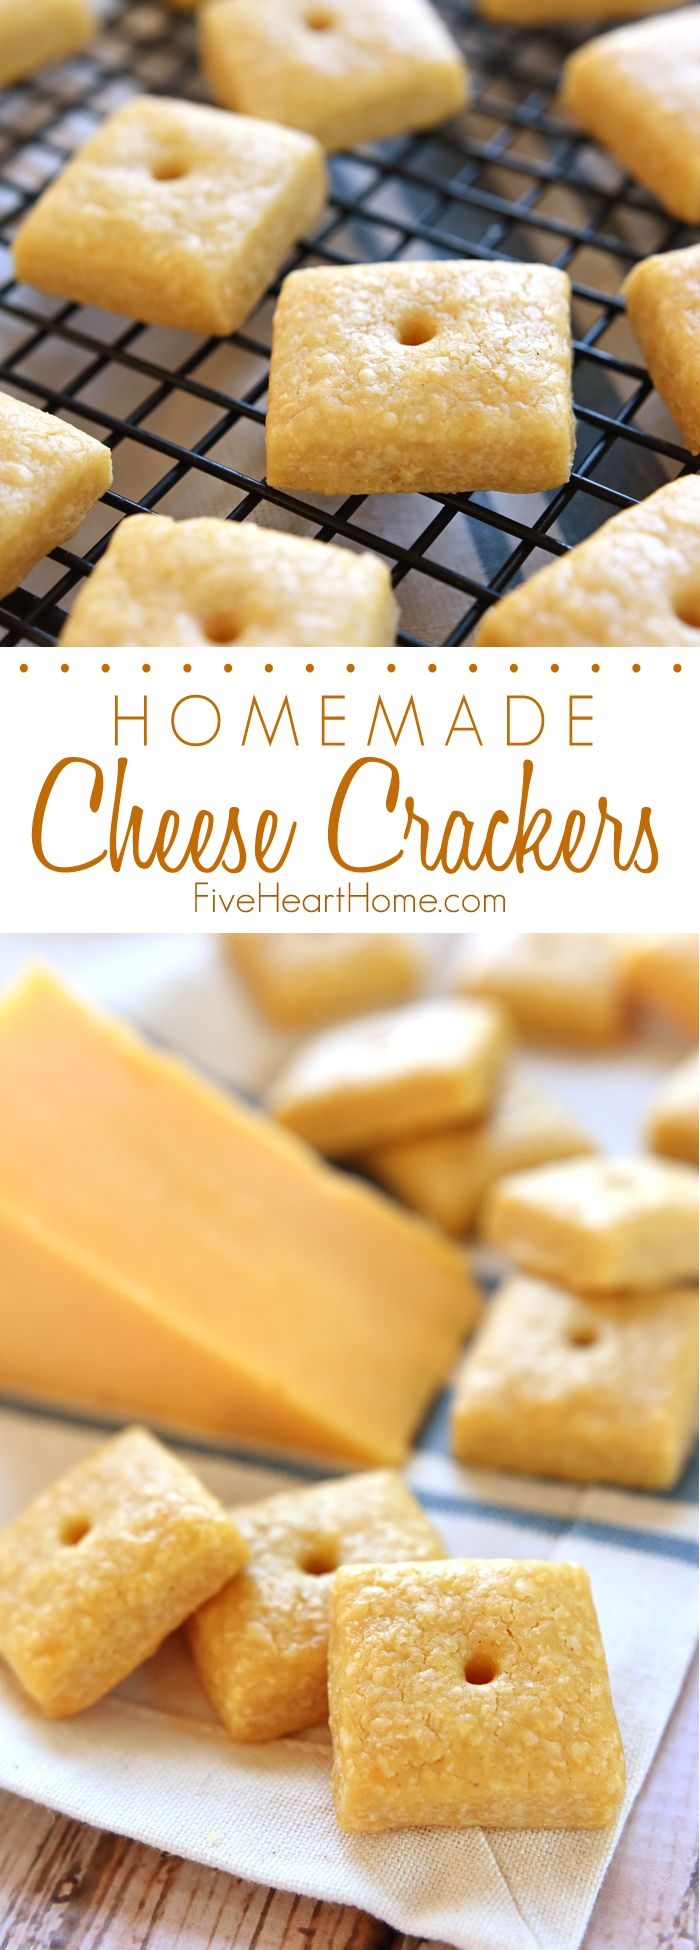 Homemade Cheese Crackers ~ tasty and all-natural, these savory crackers are not only kid approved, but you won't believe how easy they are to make! | FiveHeartHome.com